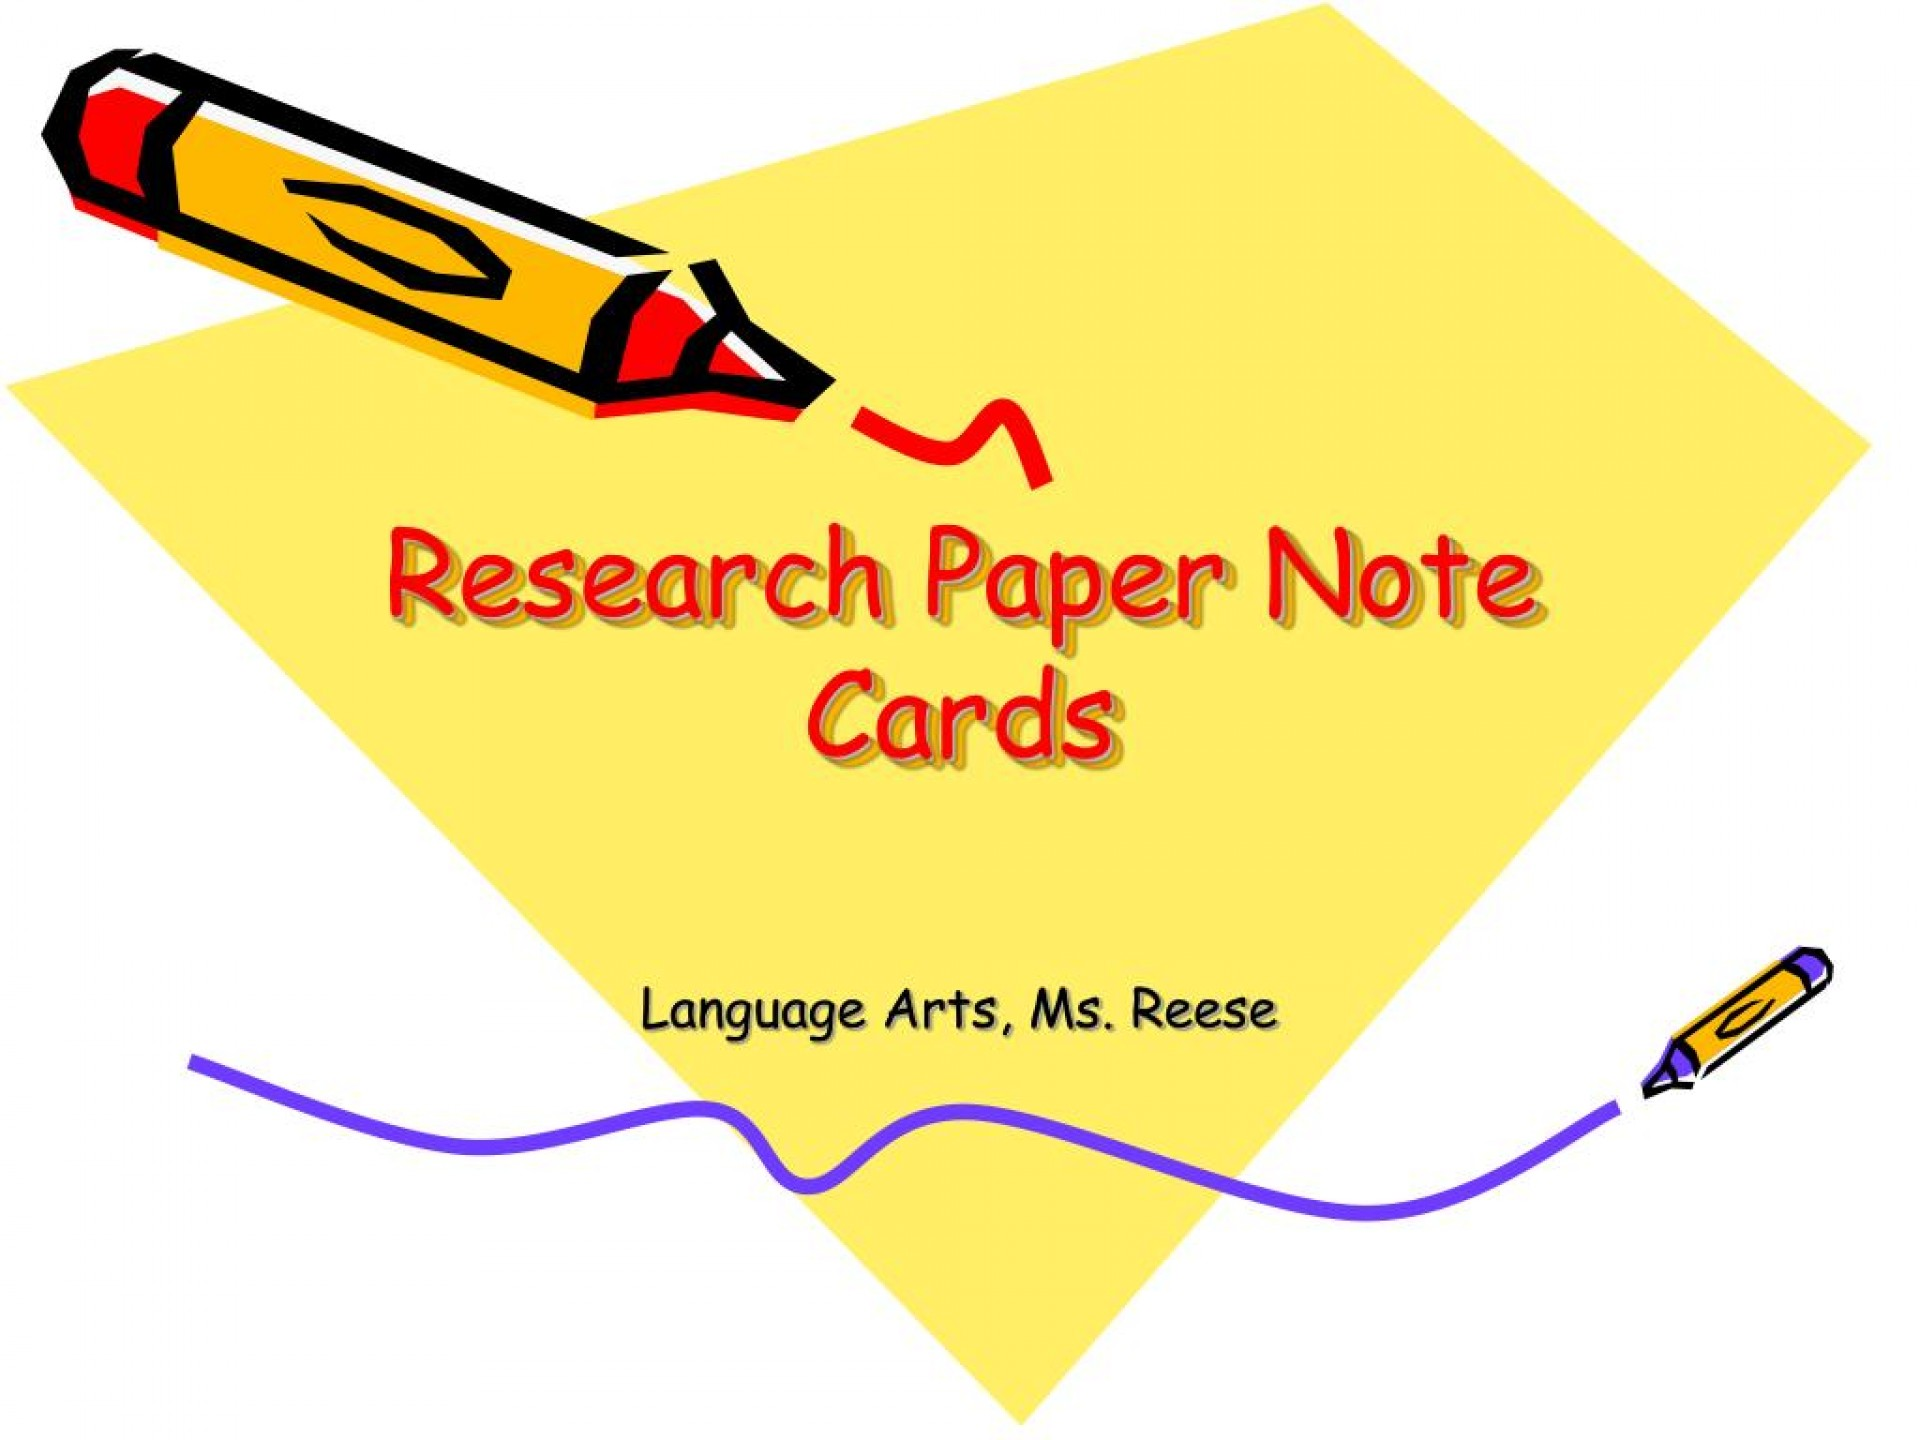 012 Research Paper Note Cards L Rare For Formatting Notecards Papers Mla Digital 1920